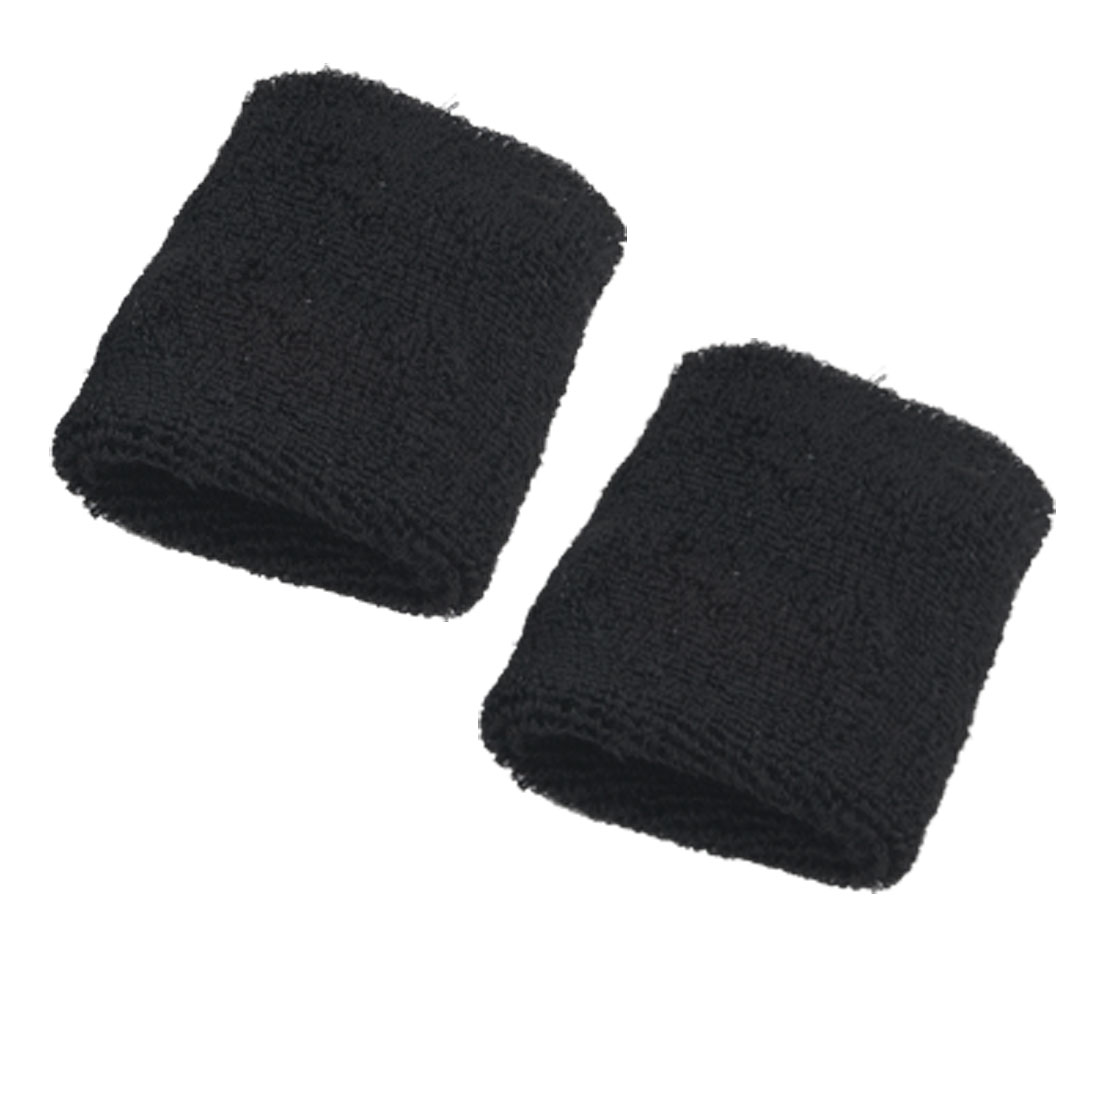 2 Pcs Black Elastic Fabric Sports Protector Wrist Band Support